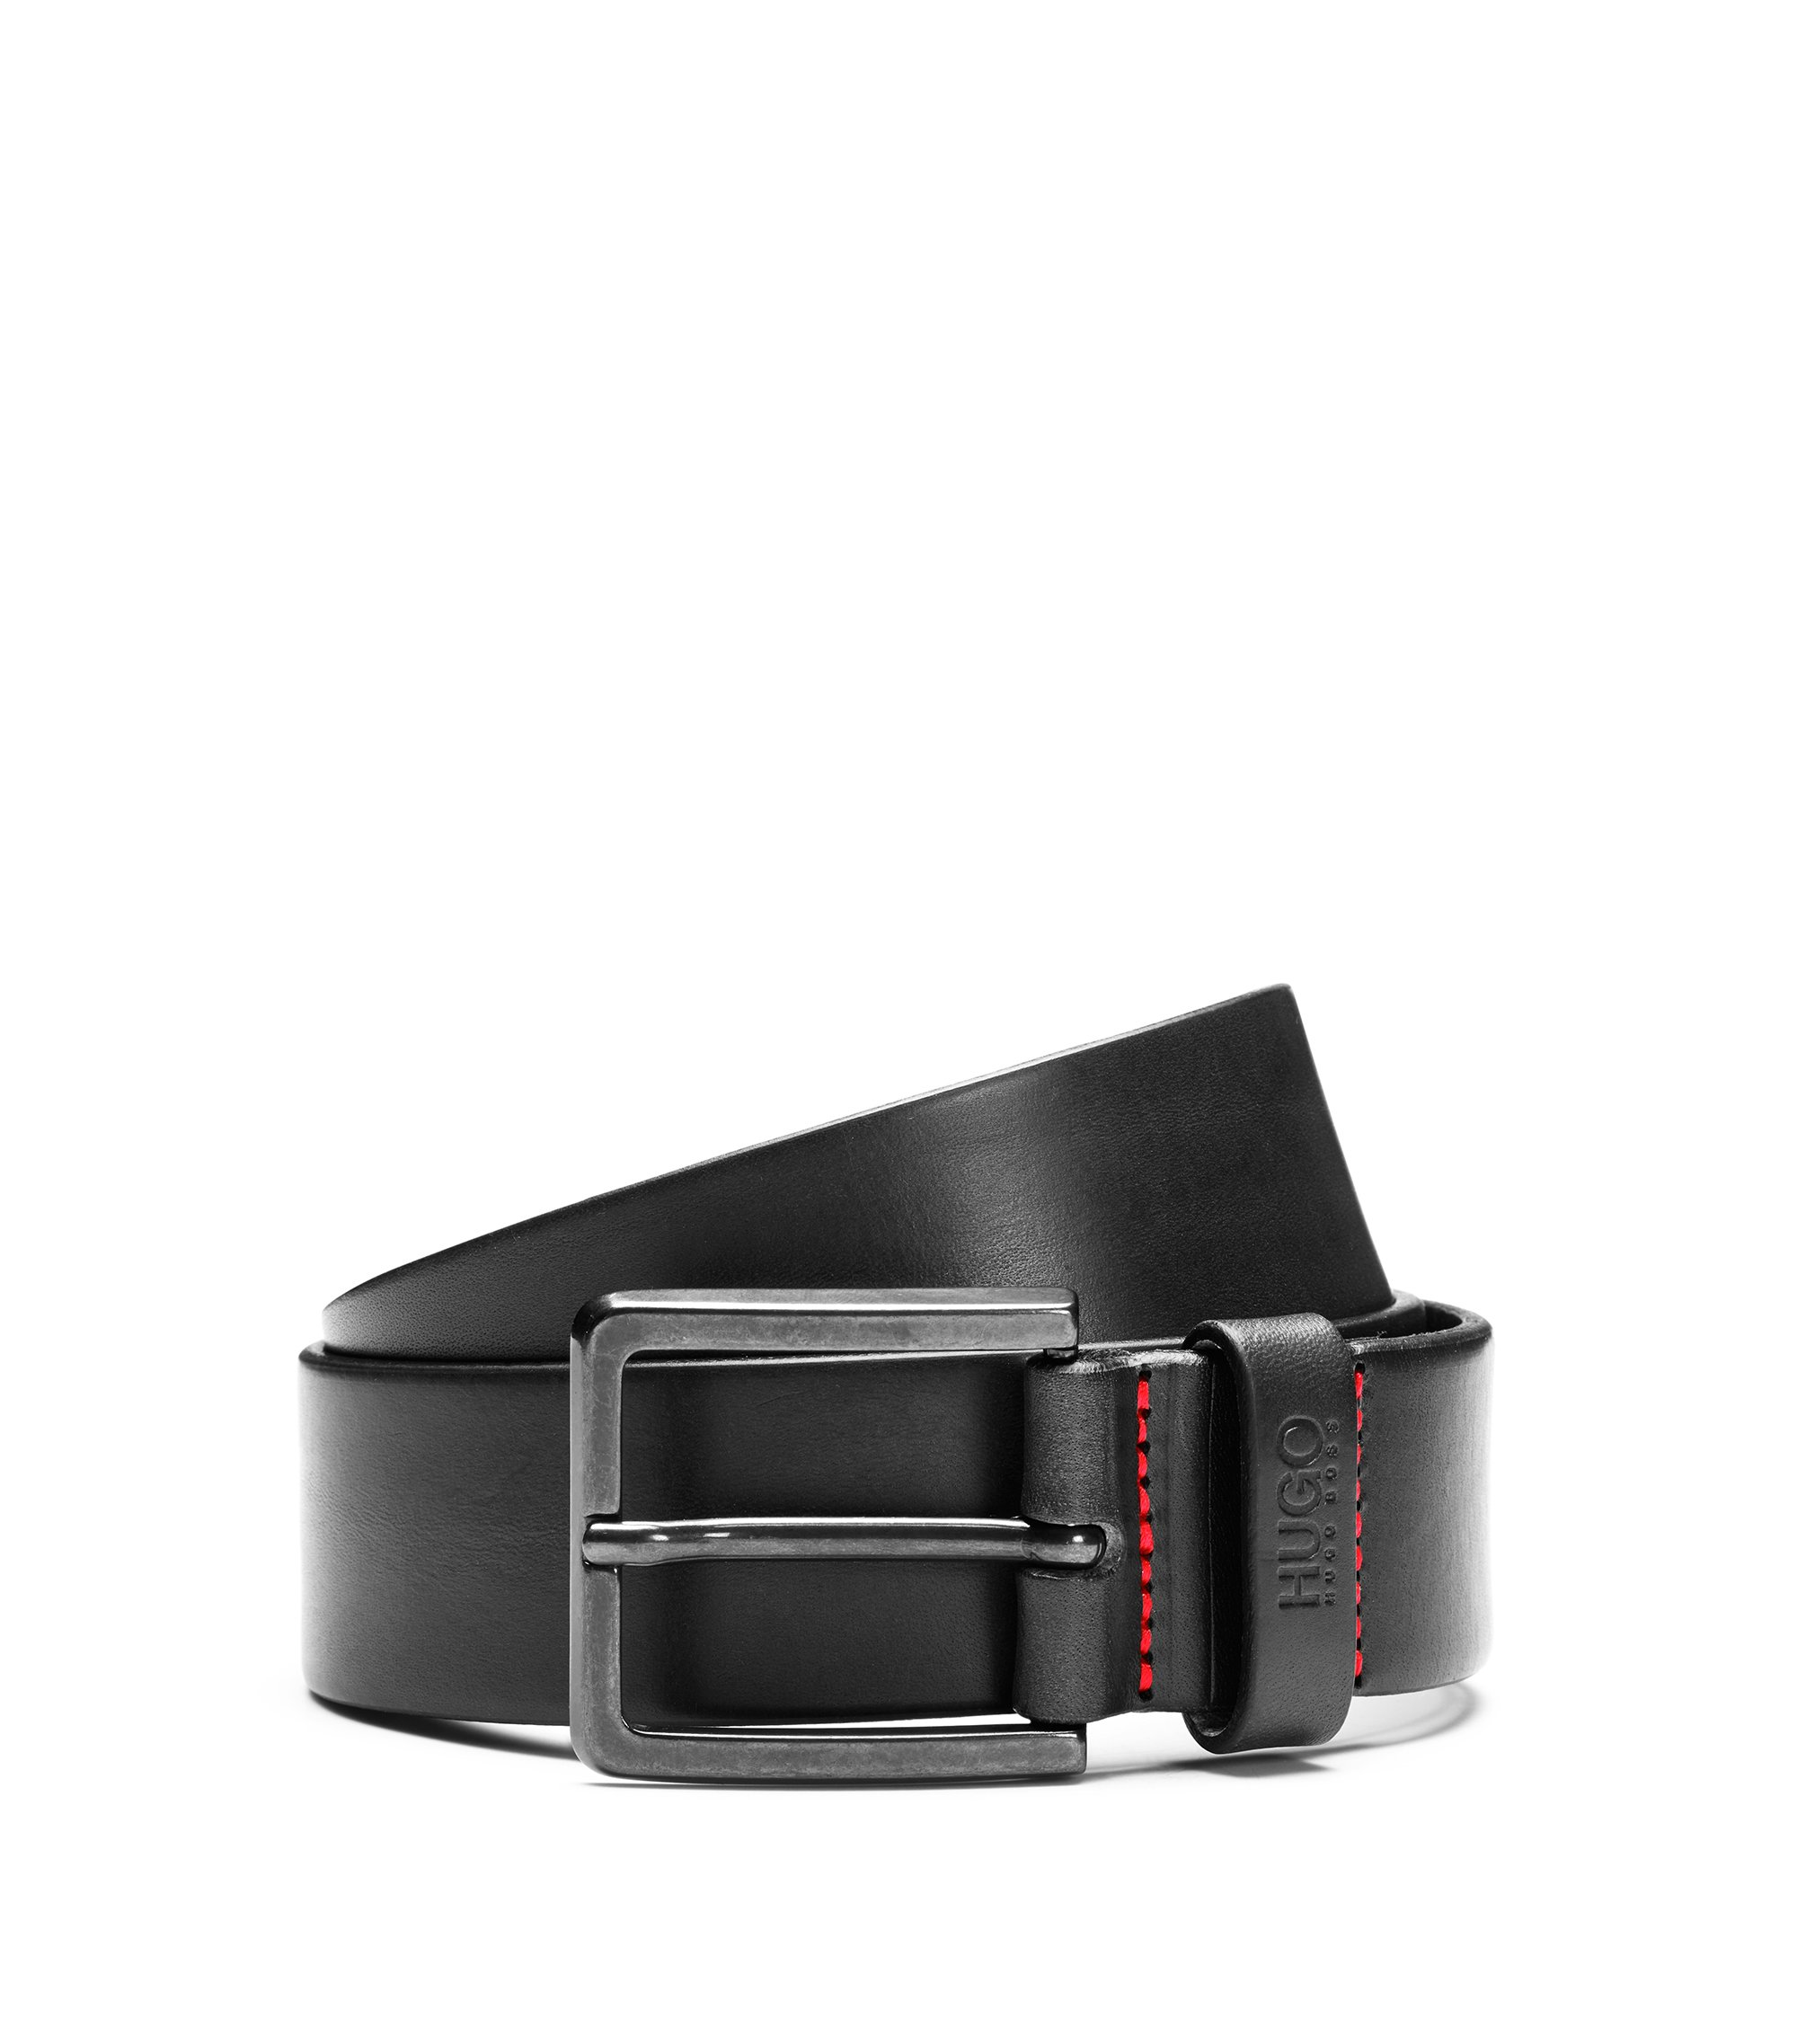 Leather belt with matte gunmetal hardware, Black